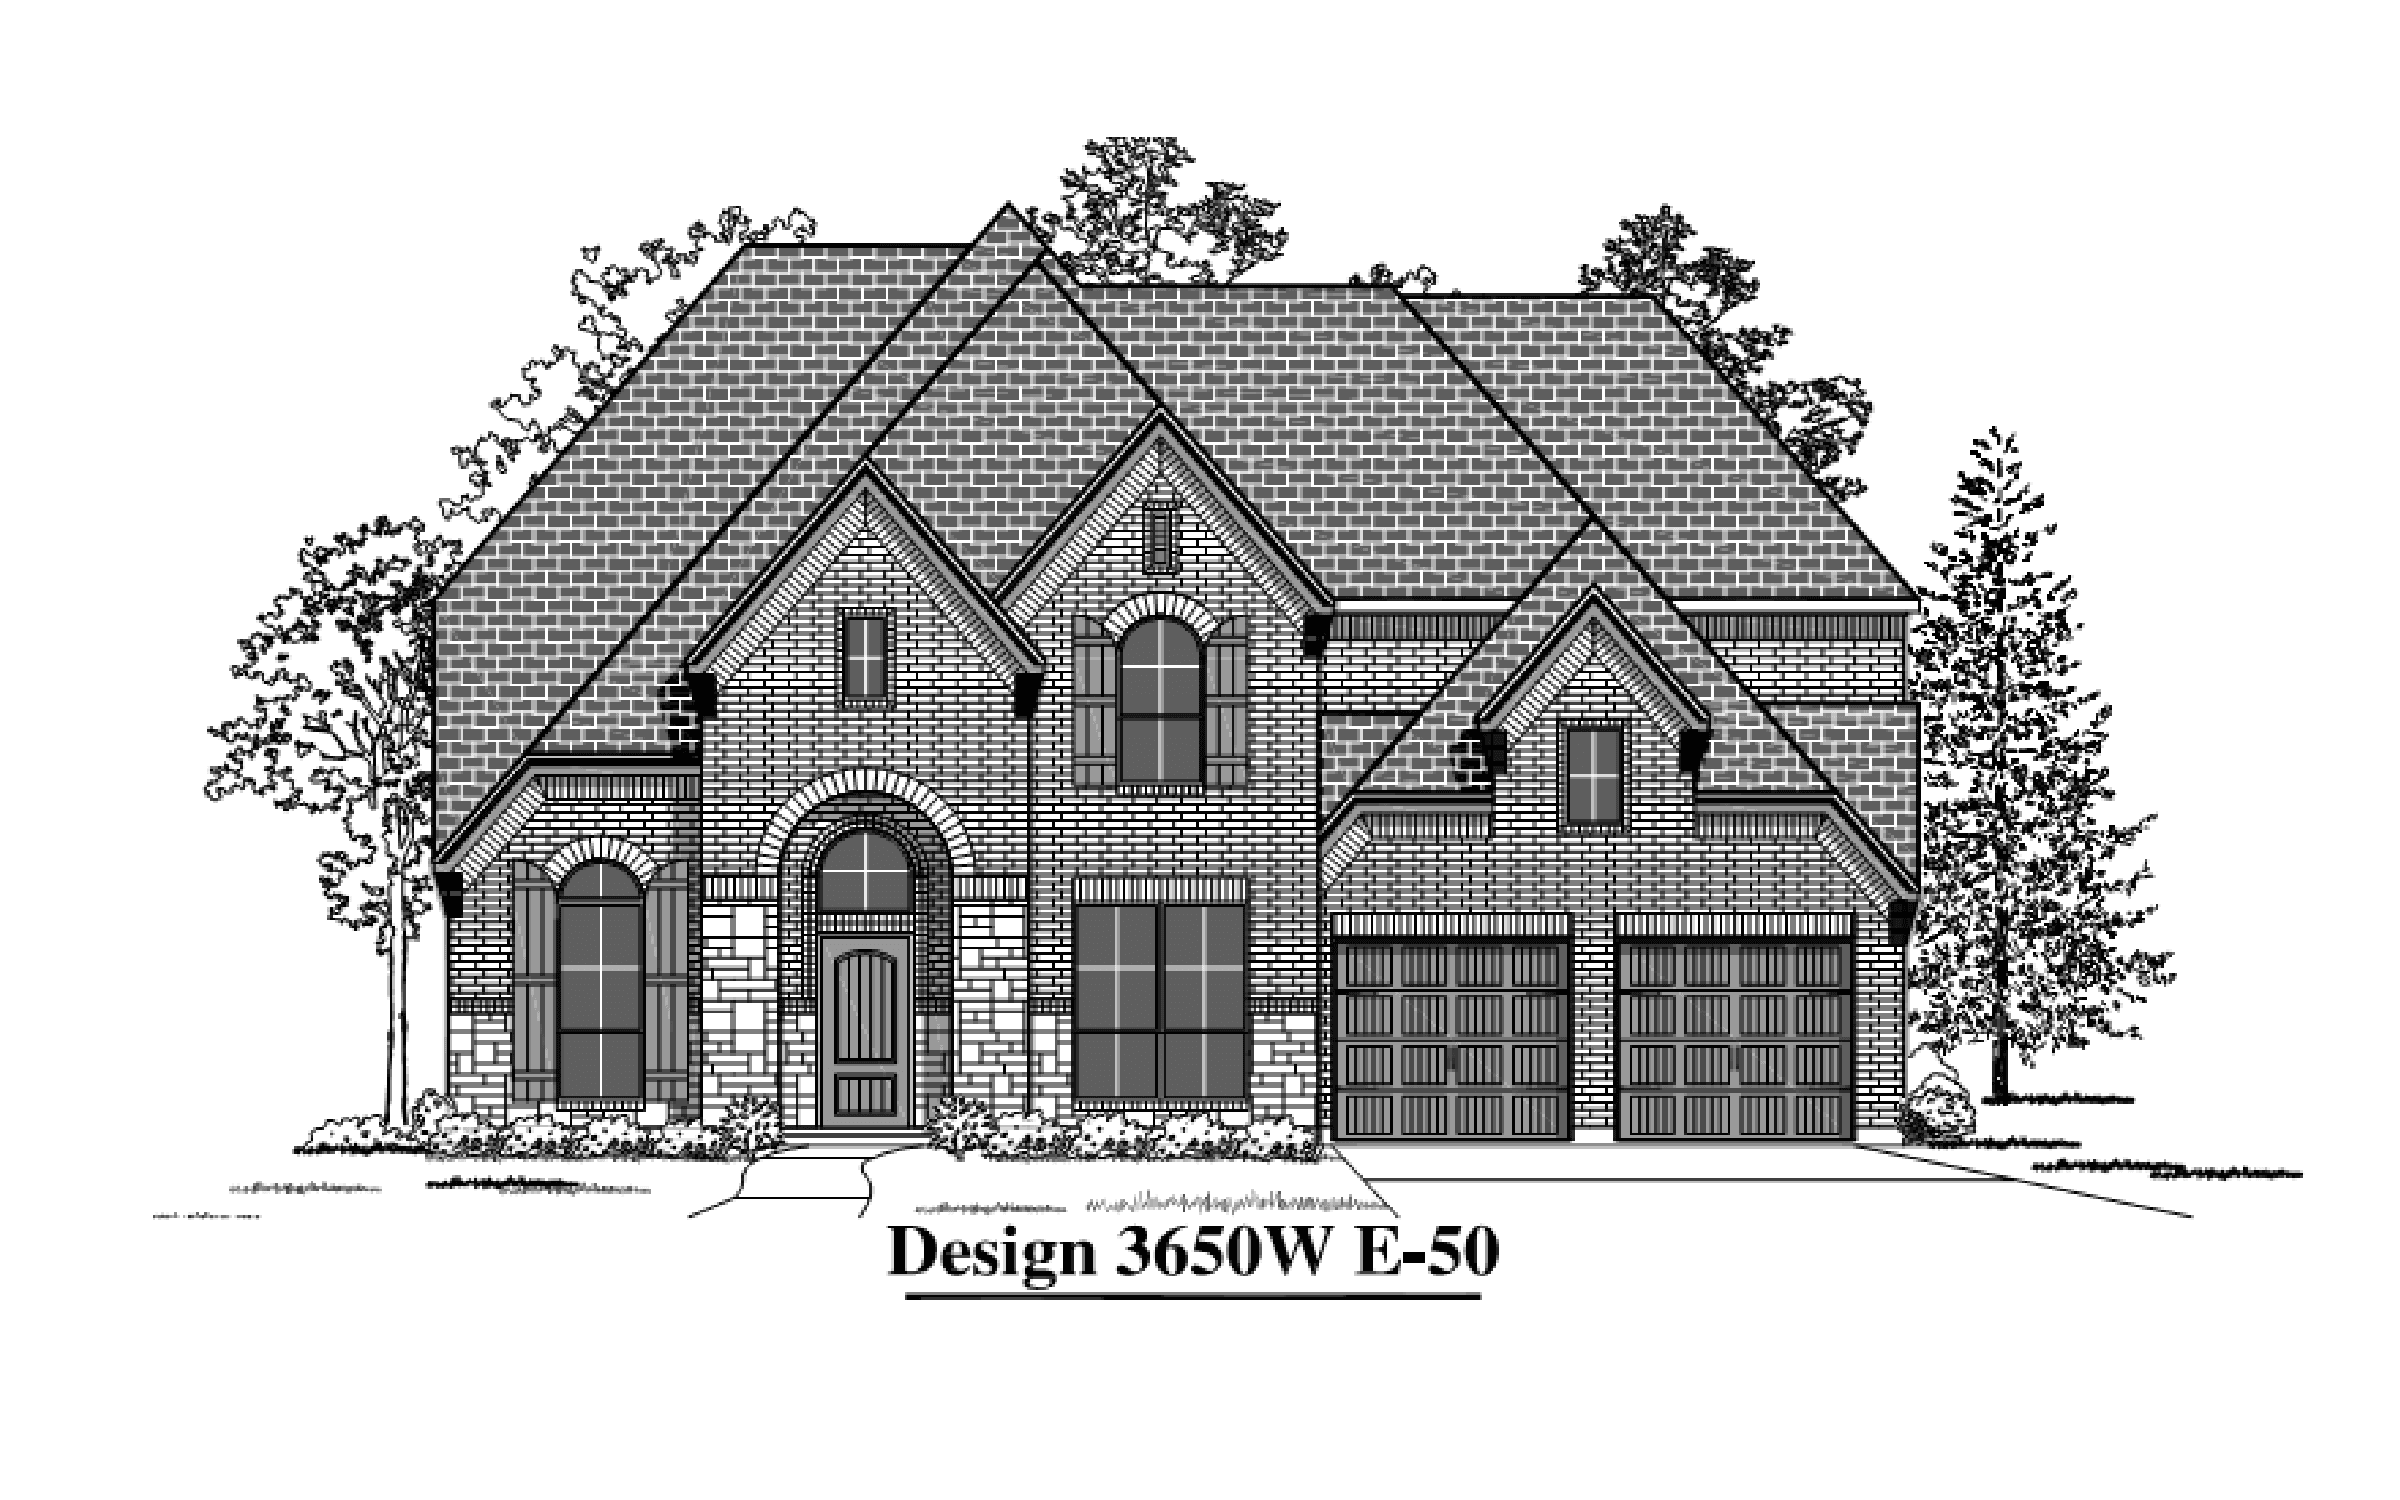 Single Family for Sale at The Village Of Mill Creek 60' - 3650w 2863 Coral Way Seguin, Texas 78155 United States